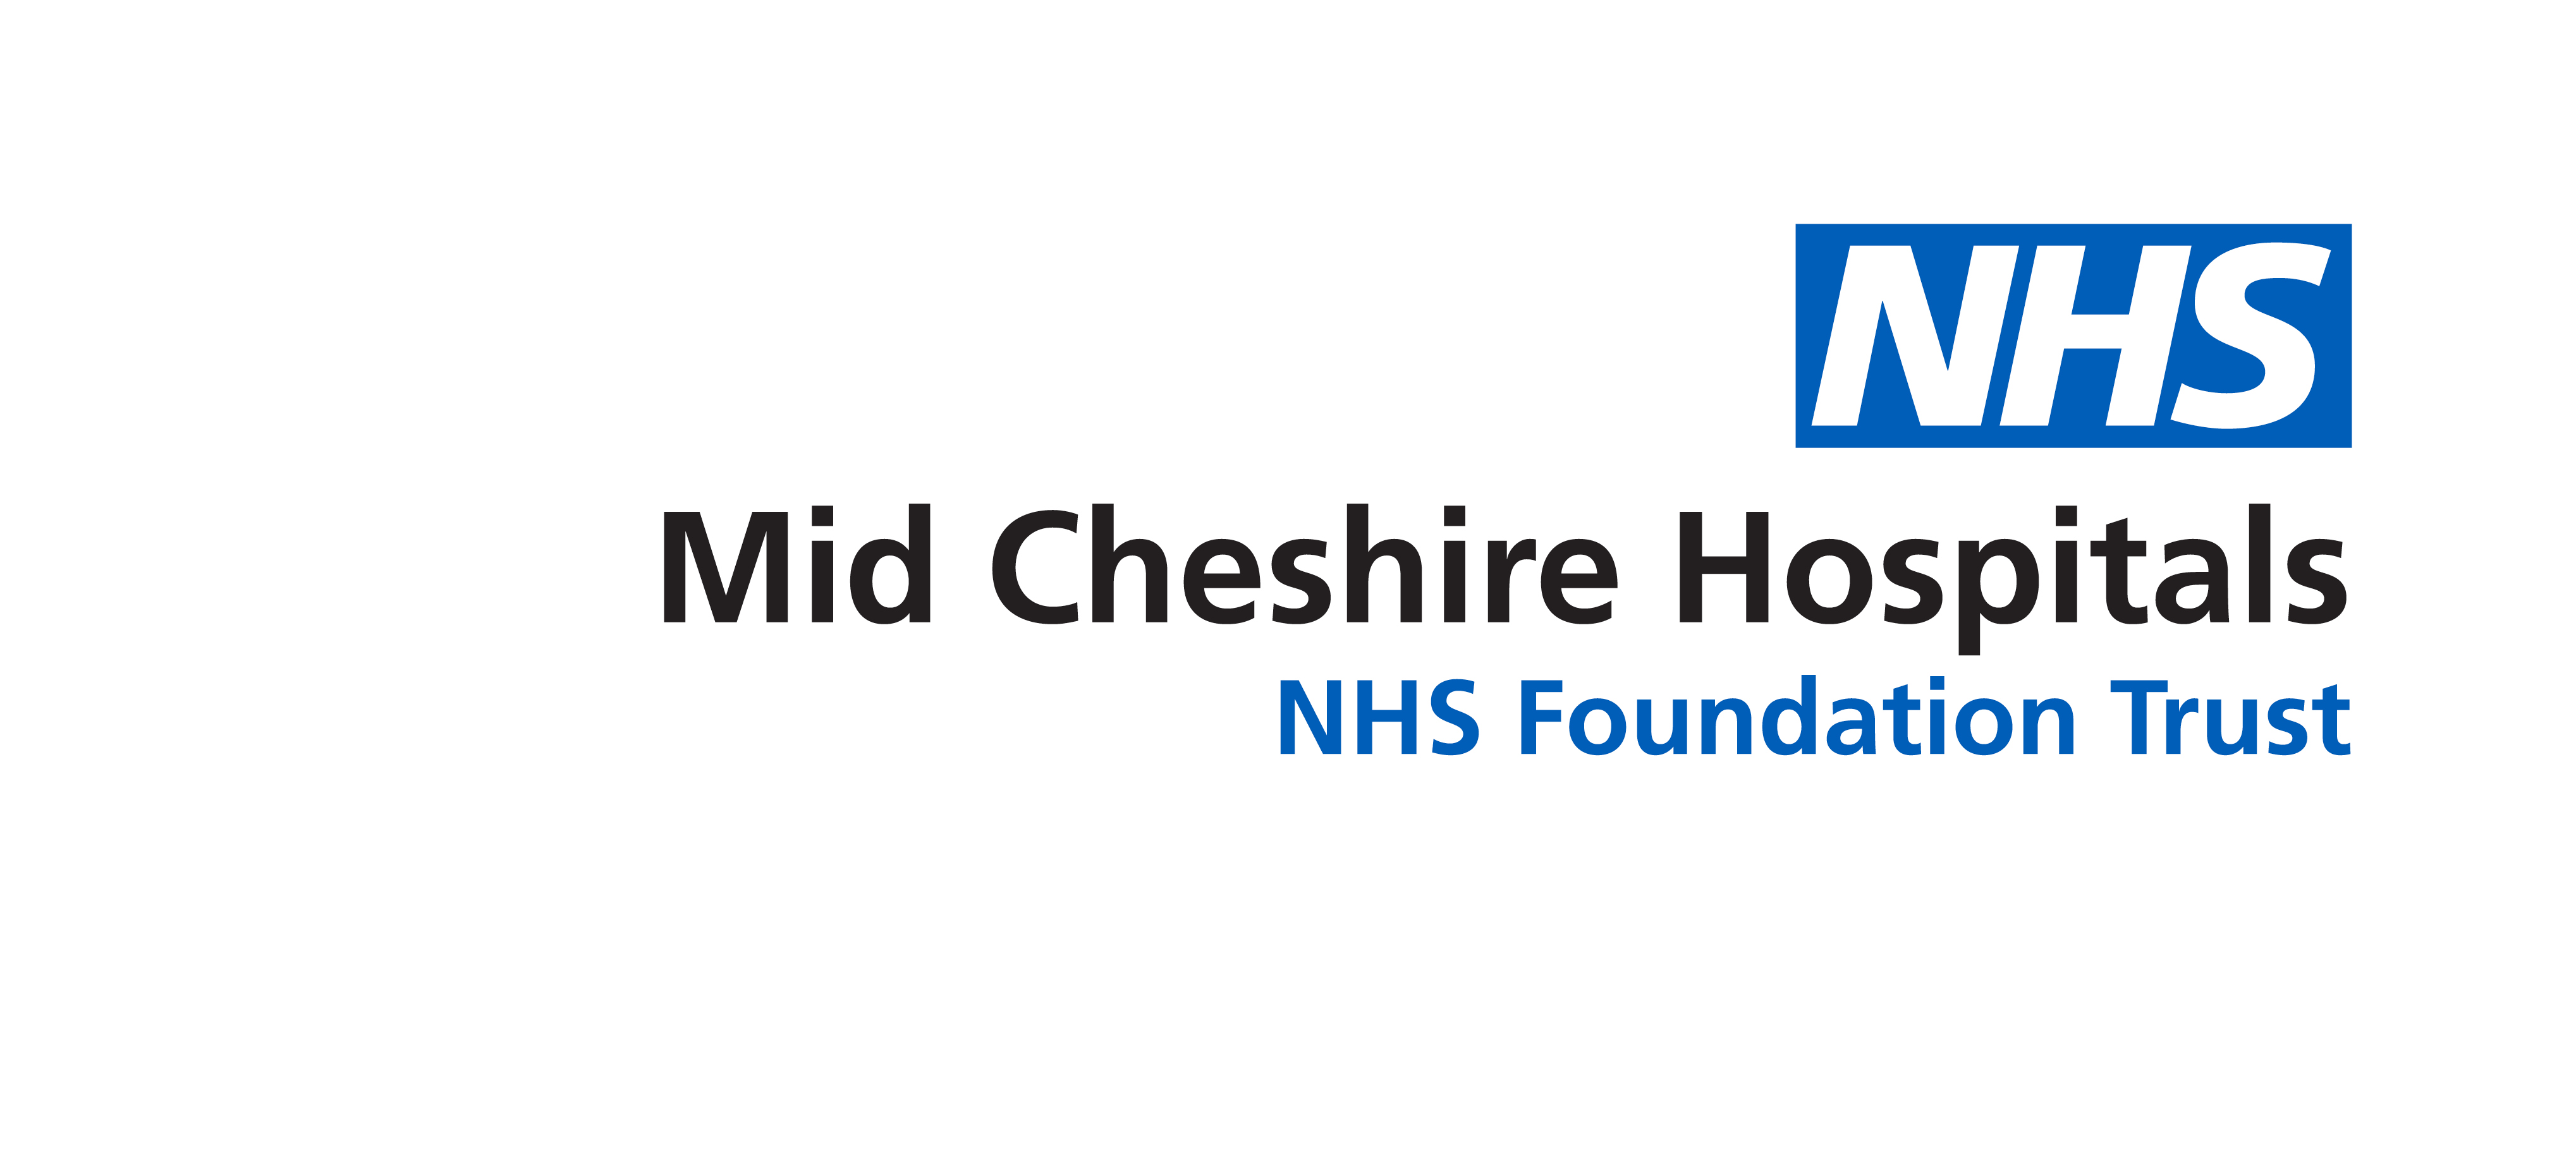 Mid Cheshire Hospitals NHS Foundation Trust